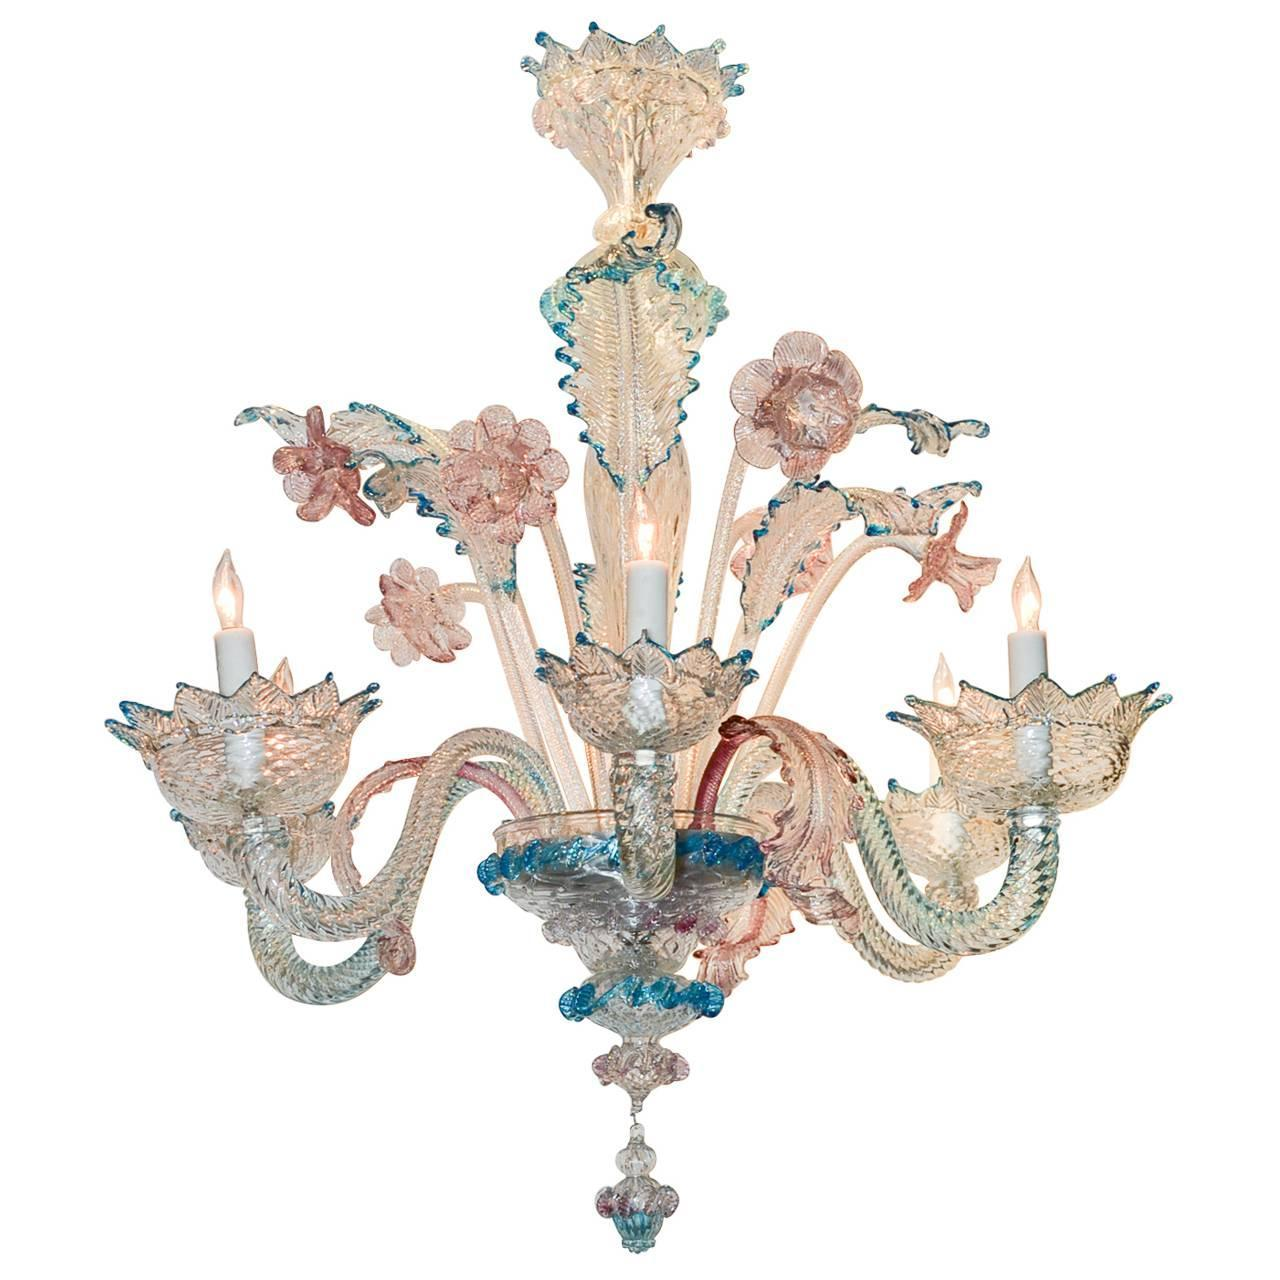 wiki chandelier chandeliers wikimedia murano file commons glass